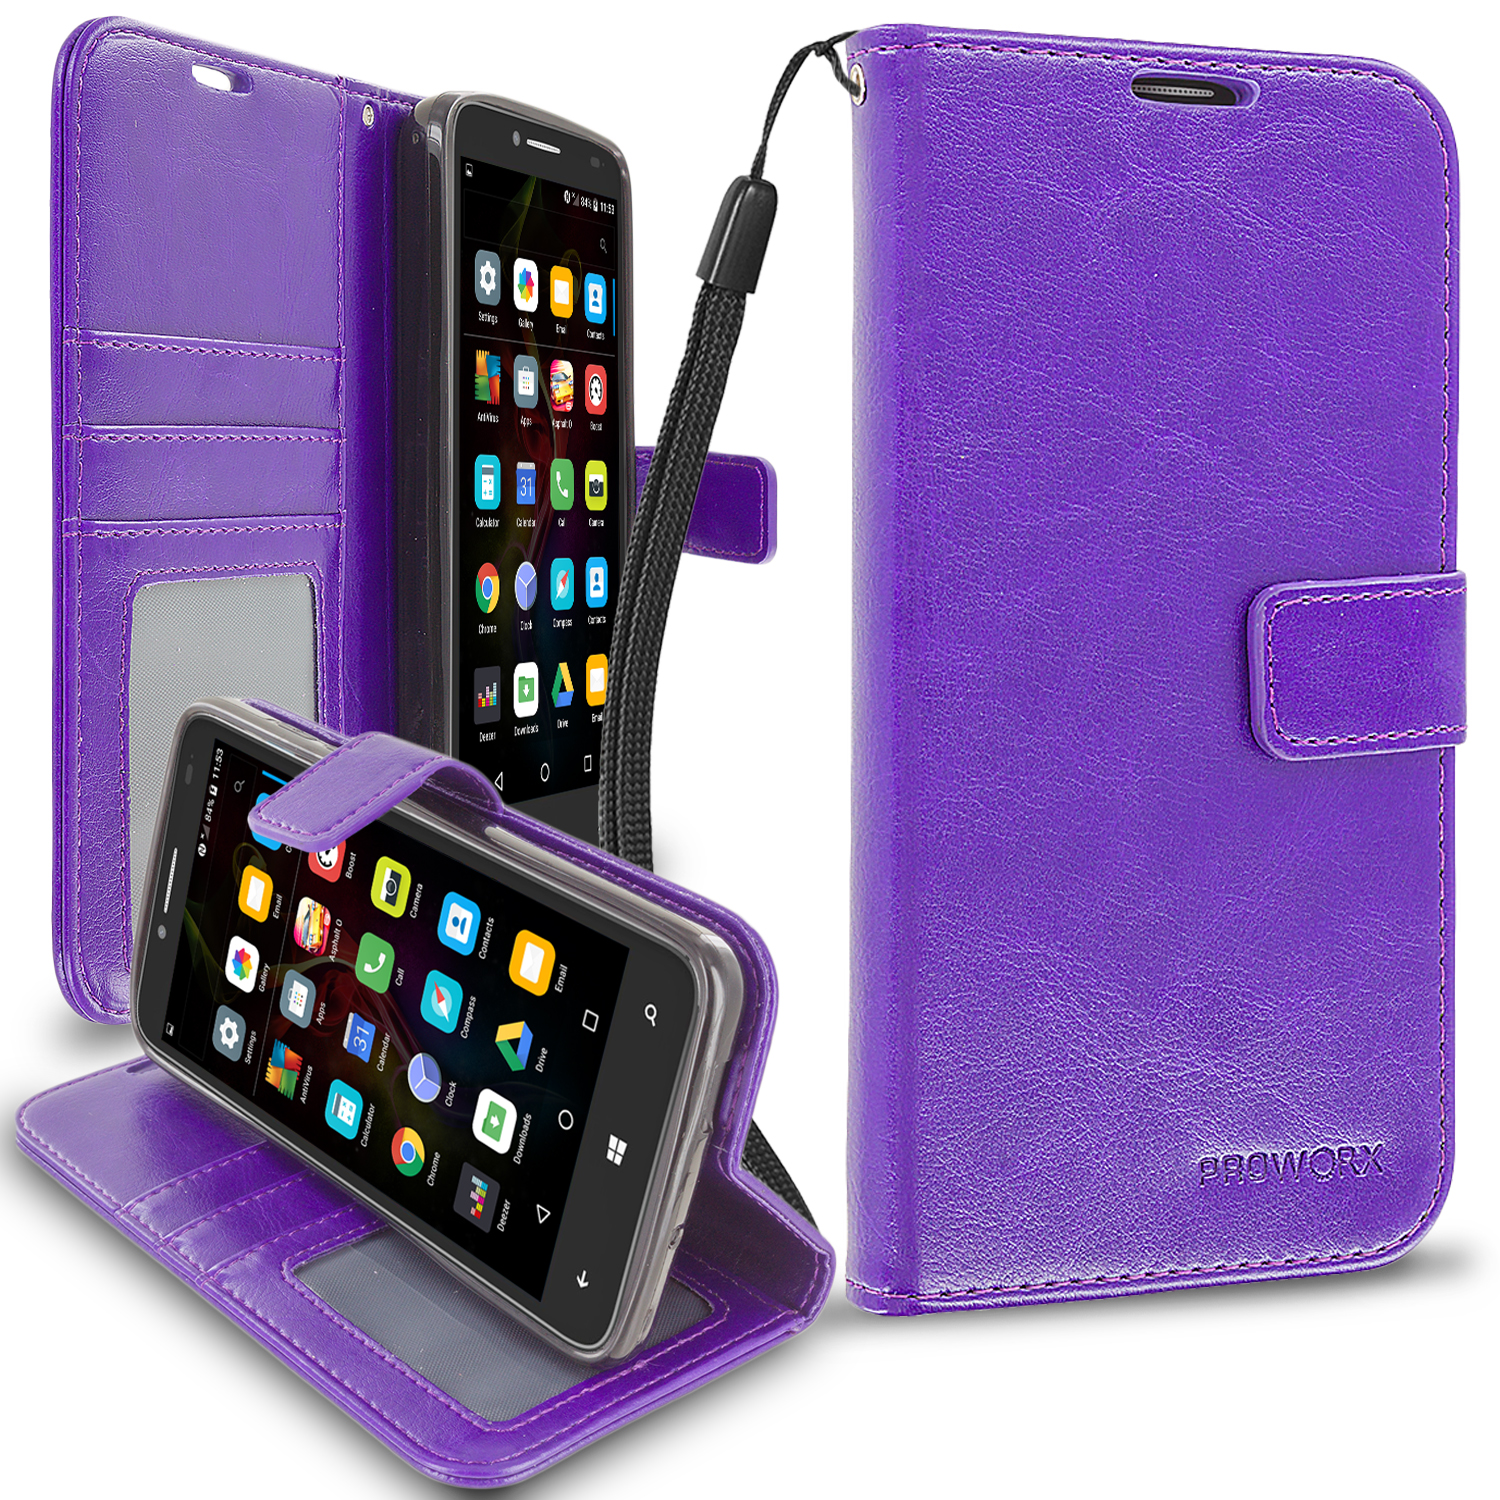 Alcatel OneTouch Fierce XL Purple ProWorx Wallet Case Luxury PU Leather Case Cover With Card Slots & Stand